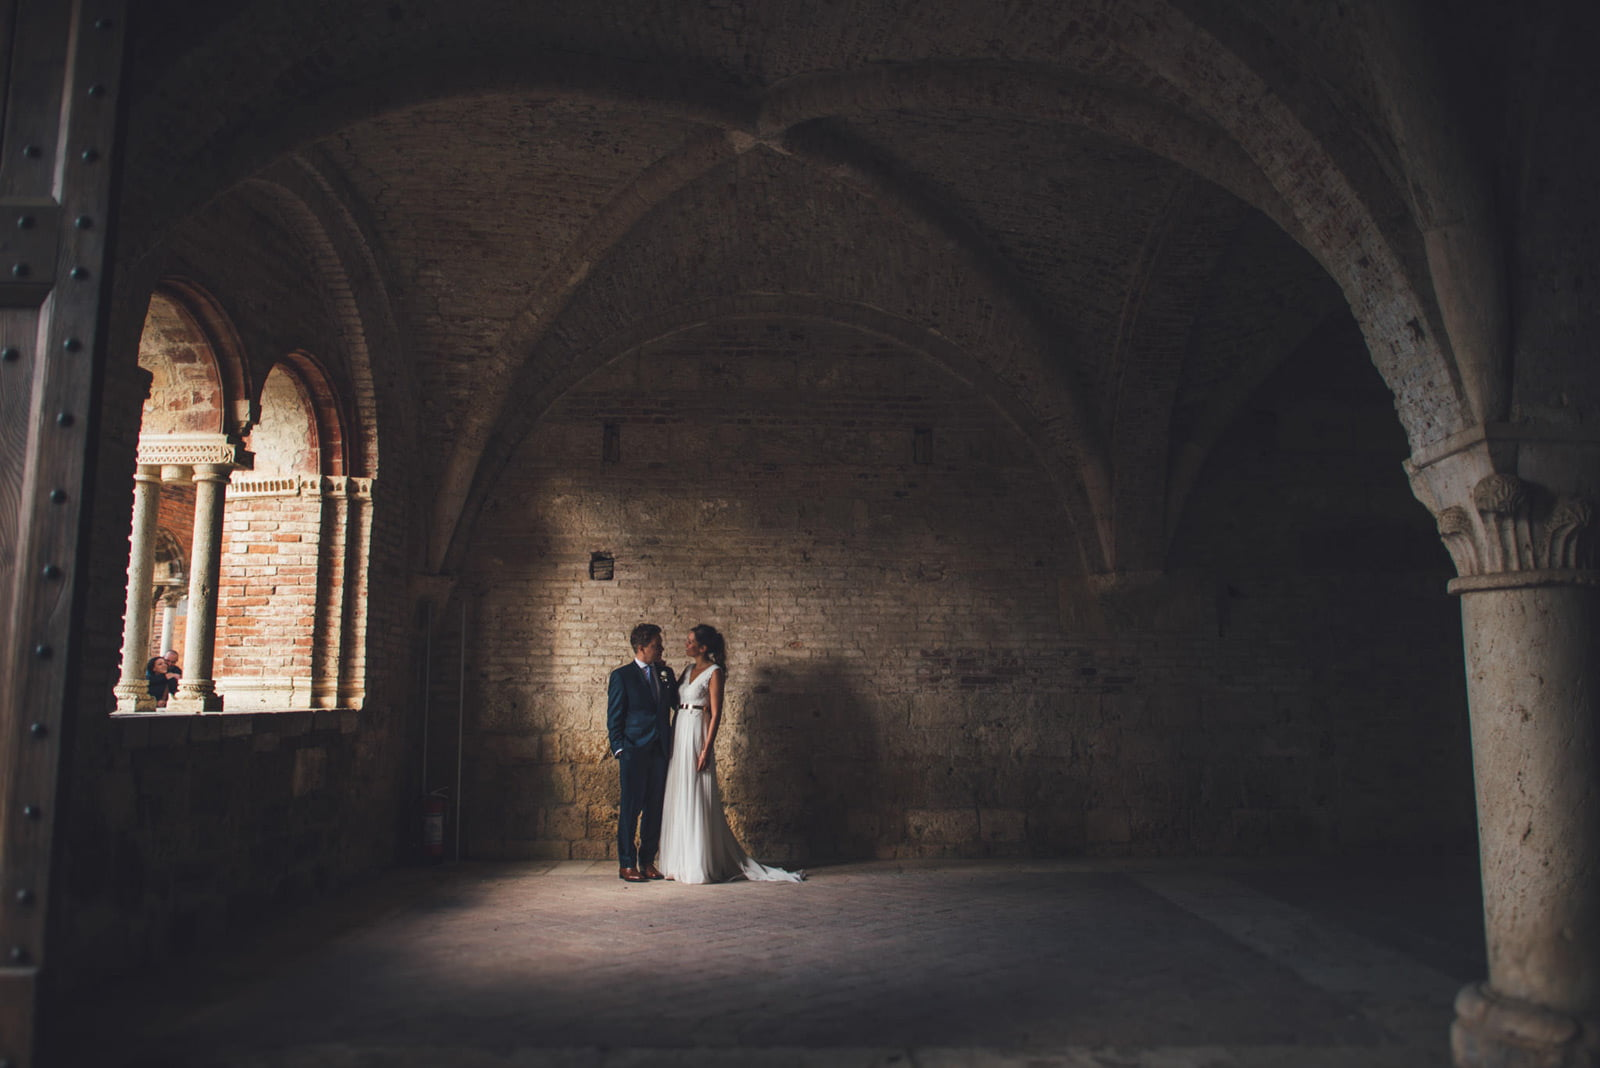 079-wedding-tuscany-san-galgano-siena-photographer